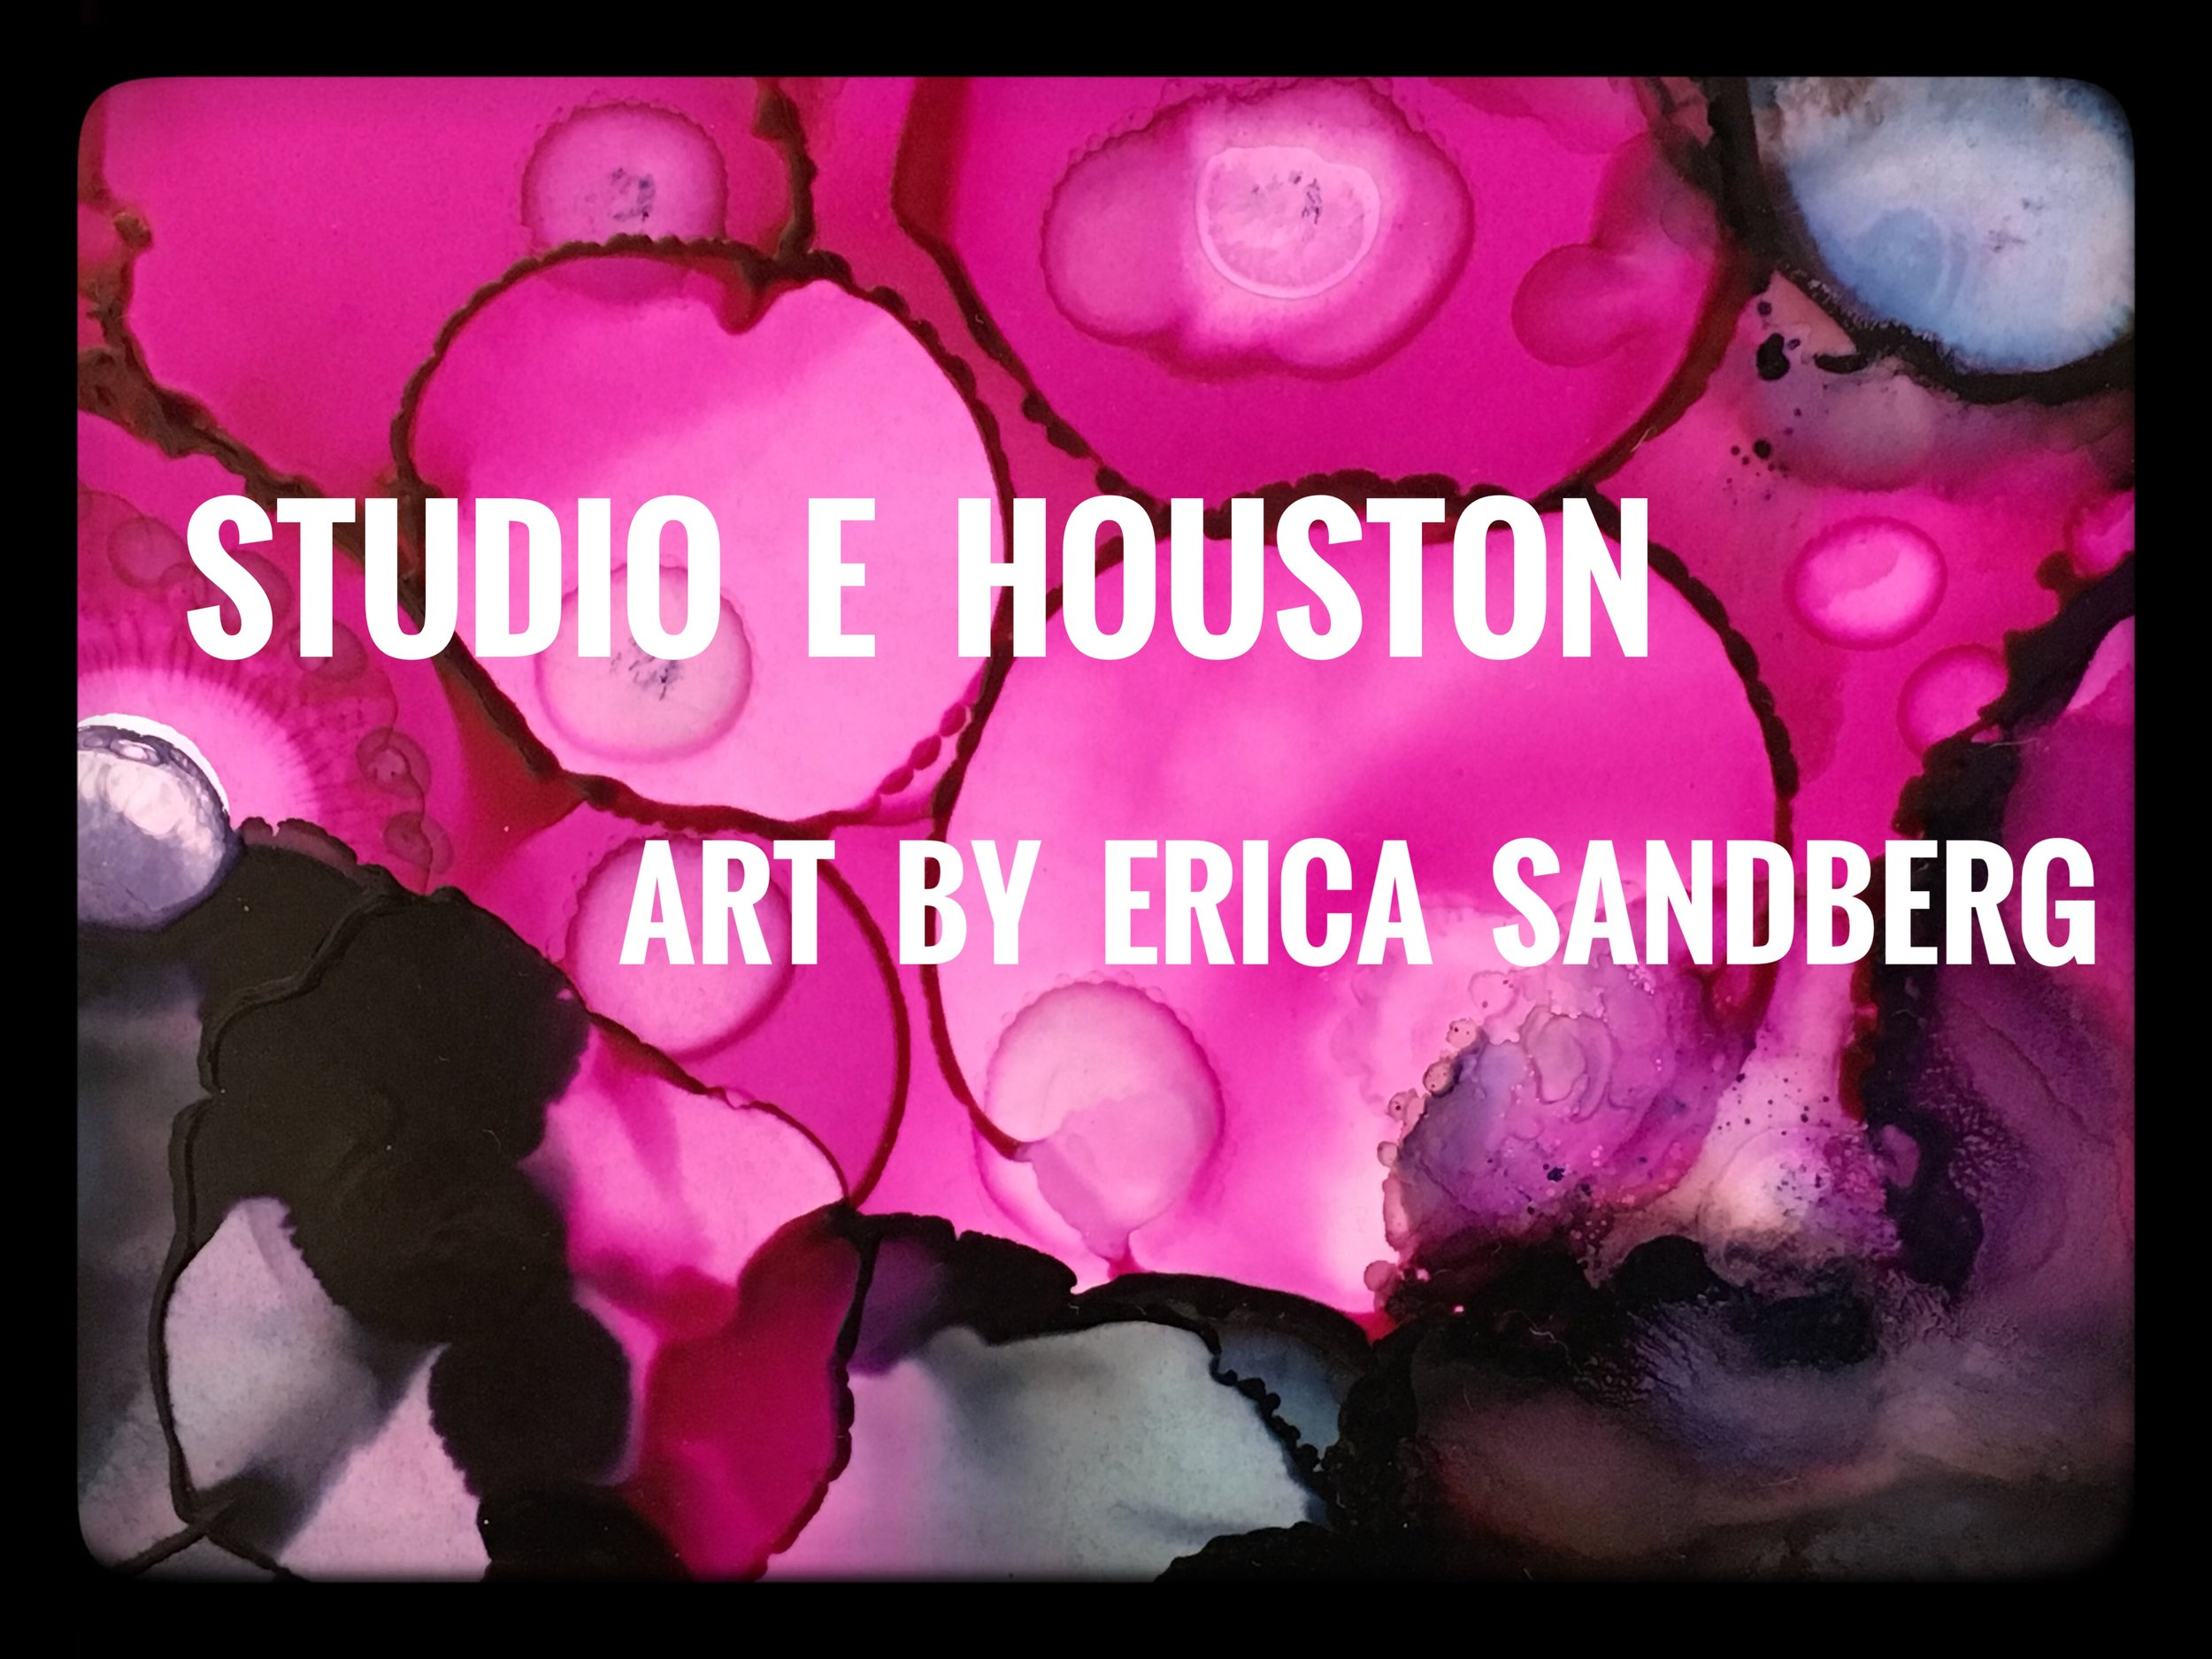 Studio E Houston LOGO - Erica Sandberg.jpg